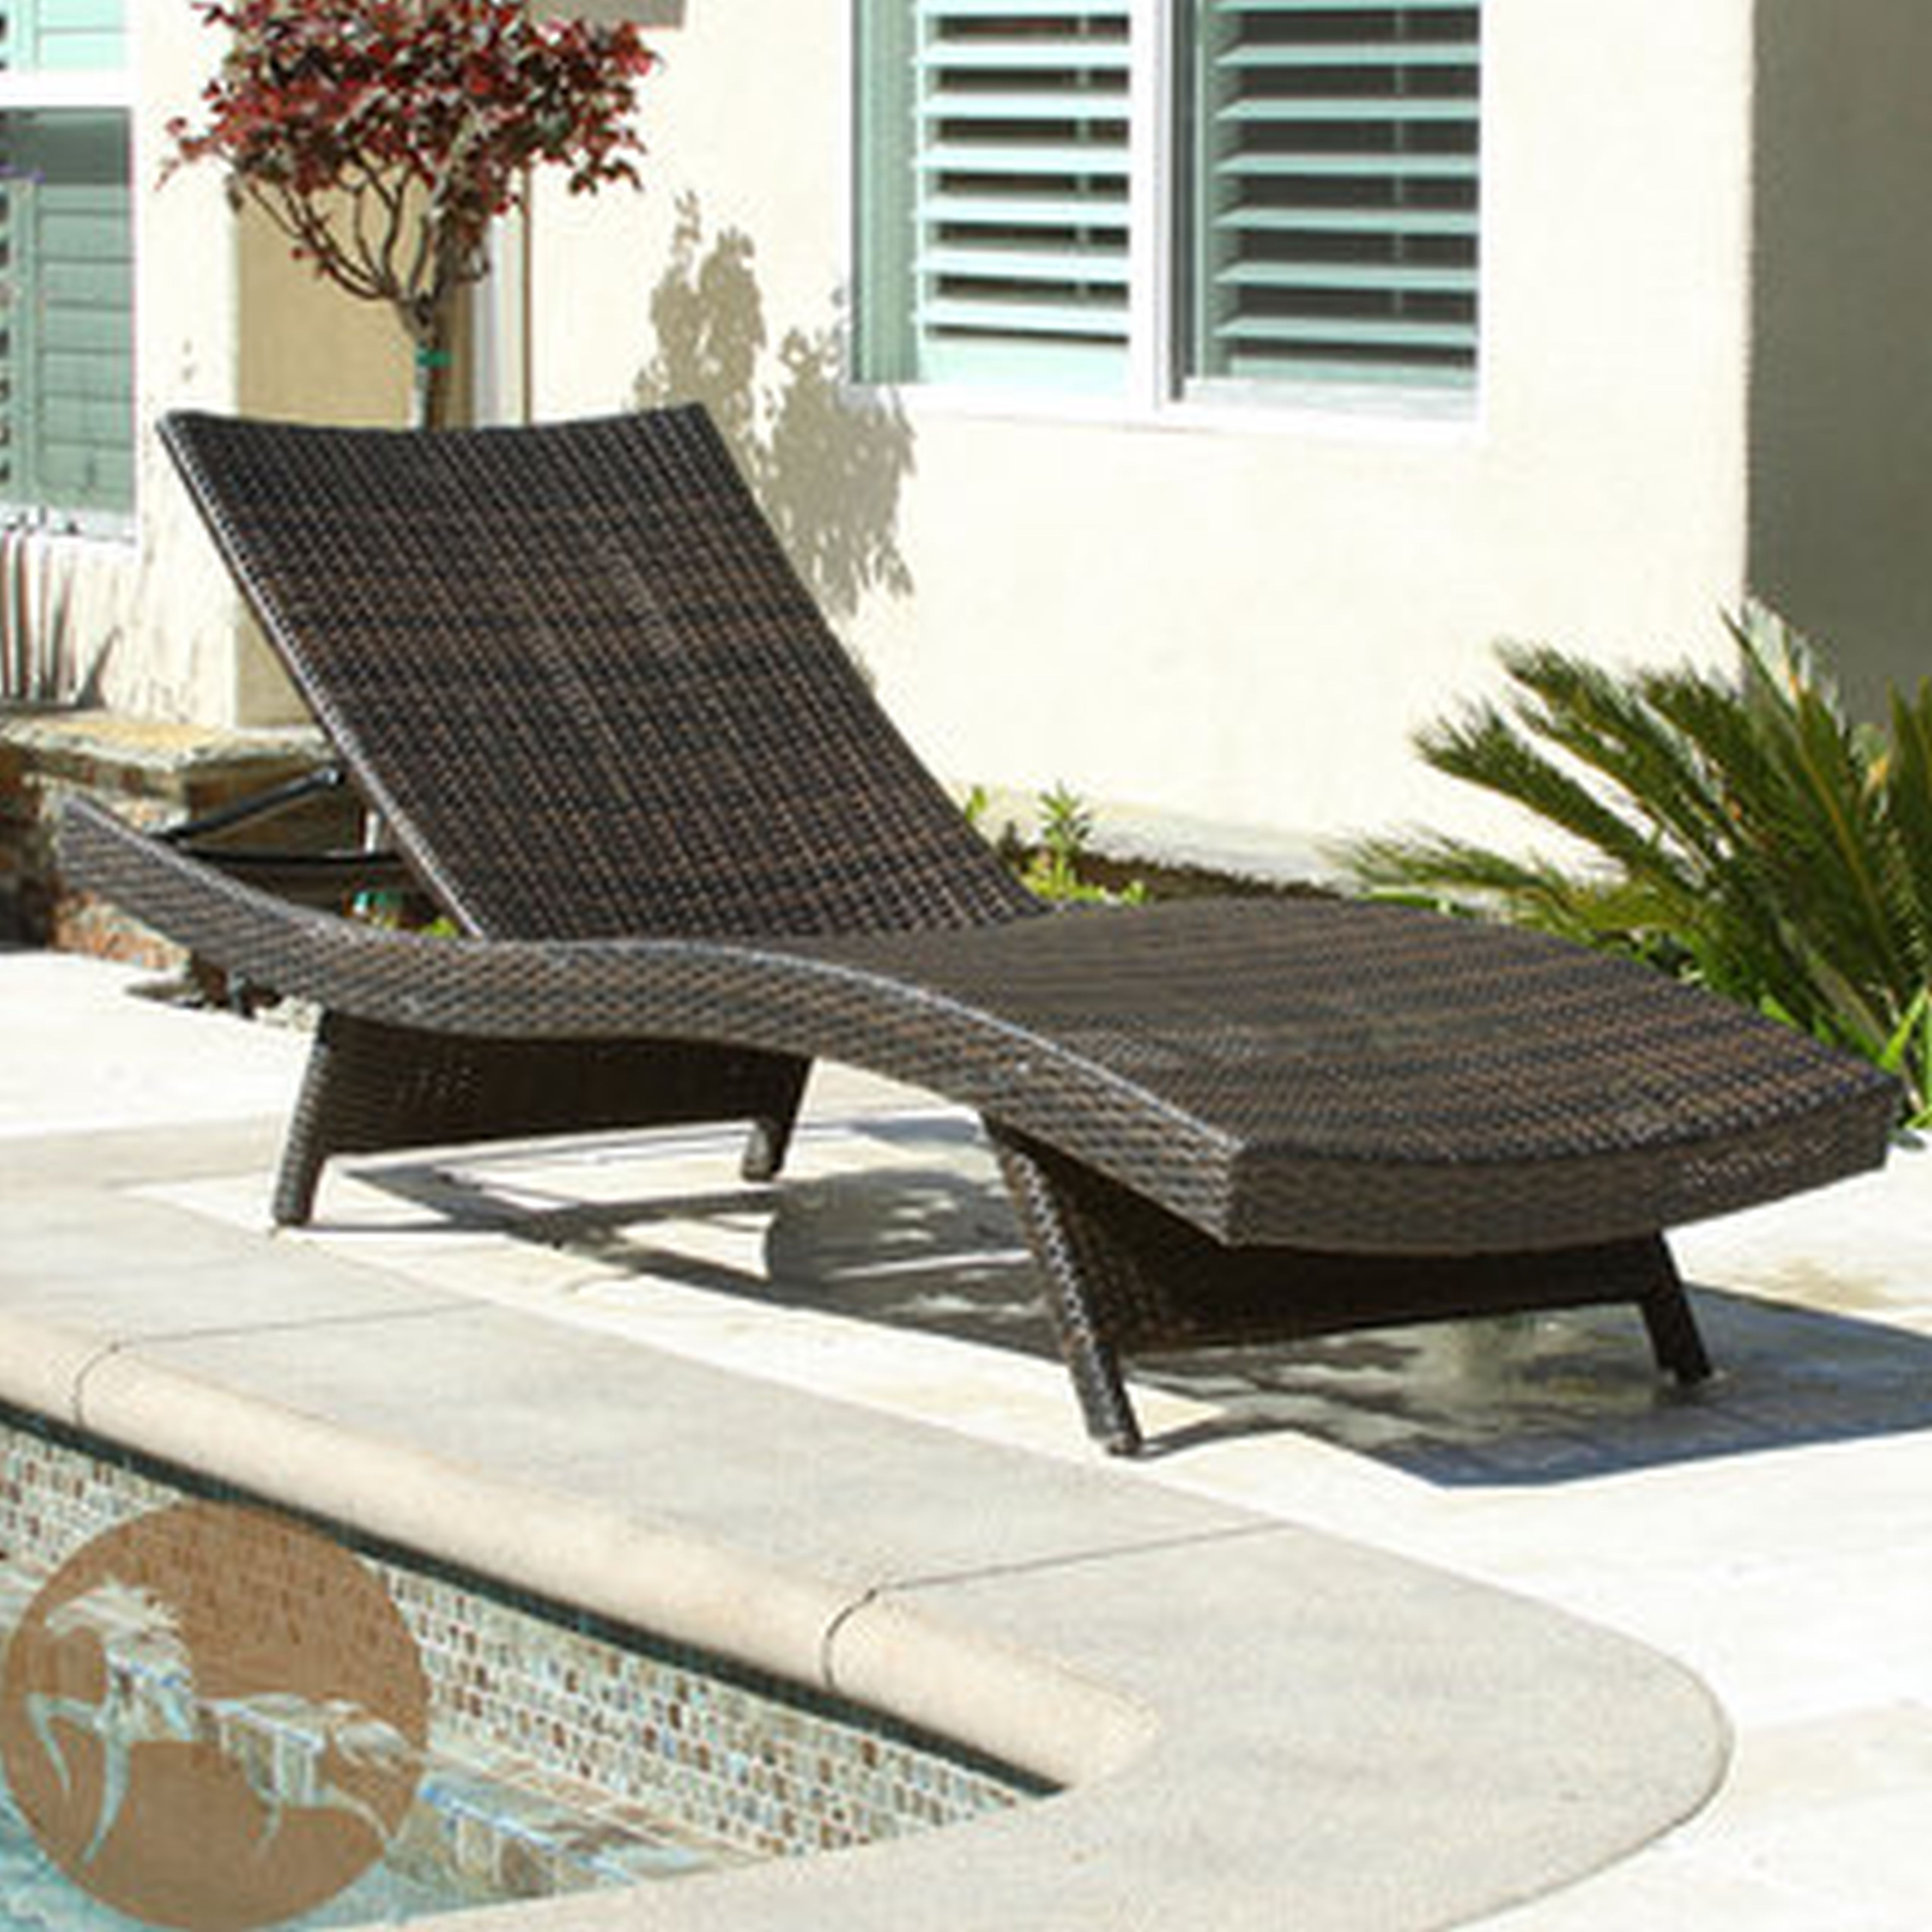 Preferred Modern Outdoor Chaise Lounge Chairs Inside Outdoor : Patio Chaise Lounge Chairs Pool Lounge Chairs Chaise (View 8 of 15)